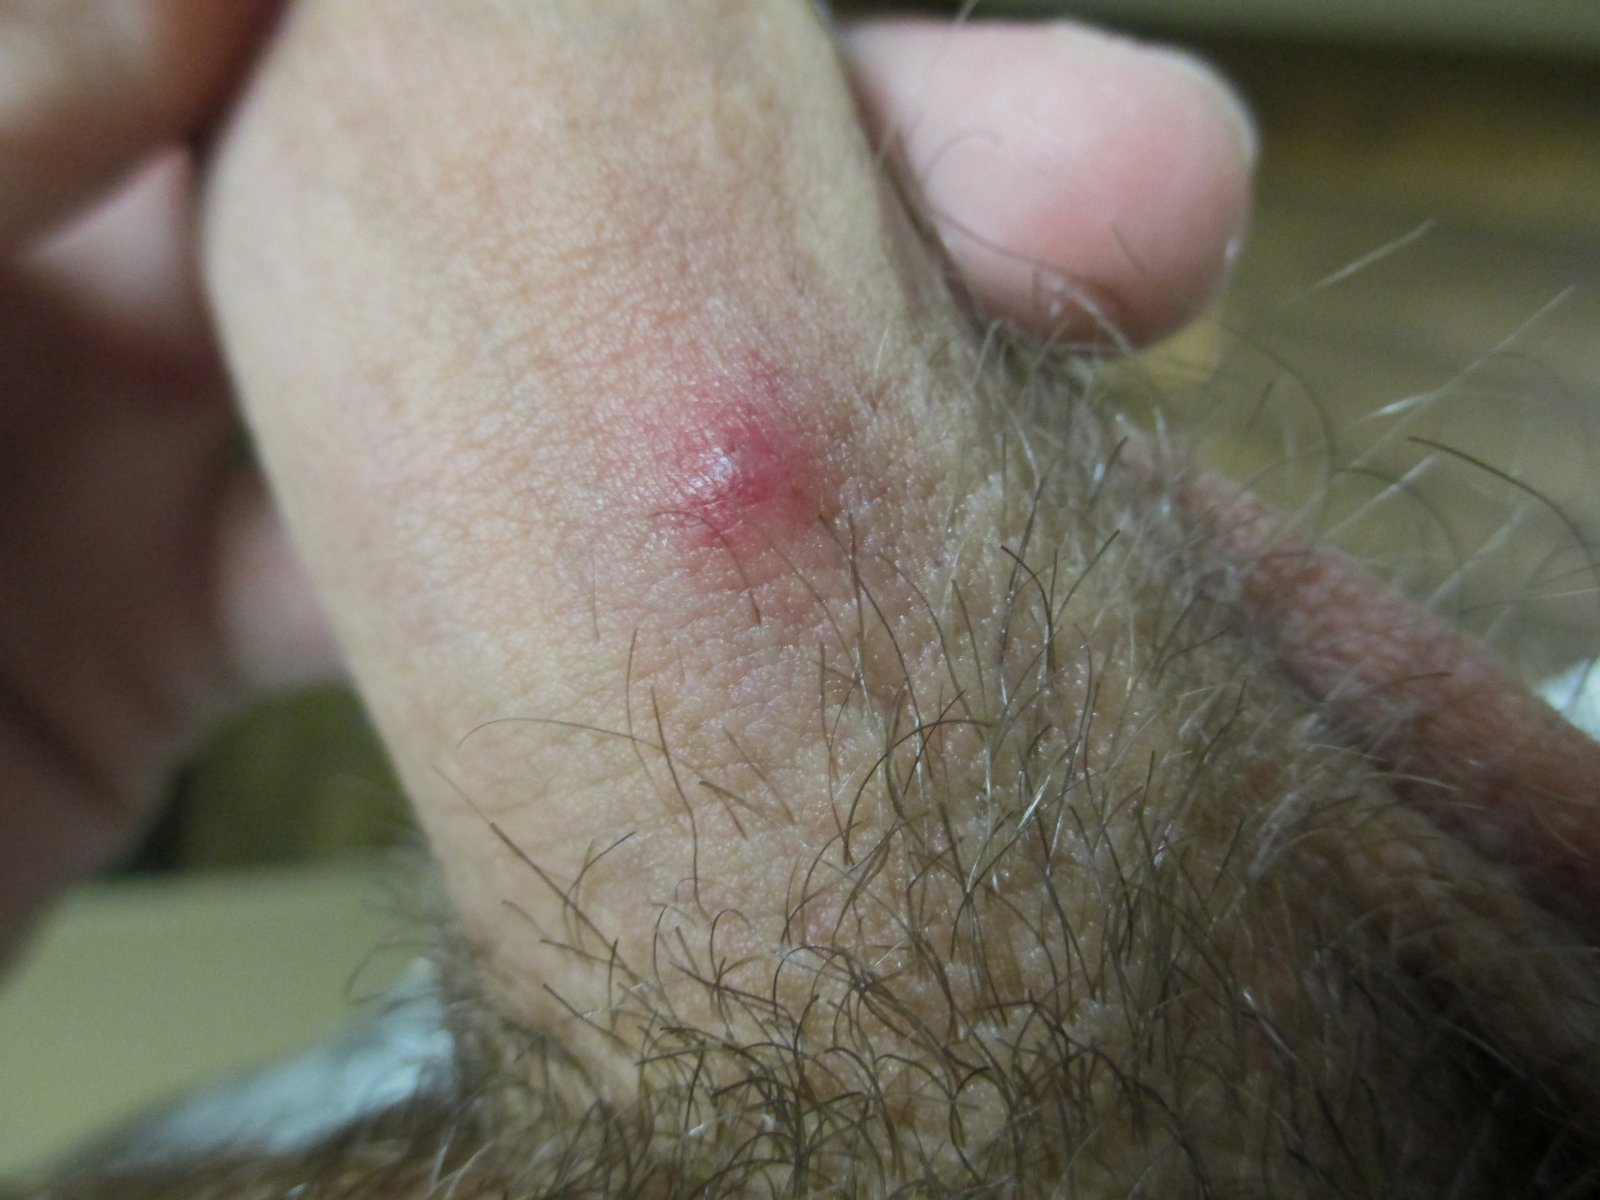 Spots on penis can be a sign of herpes